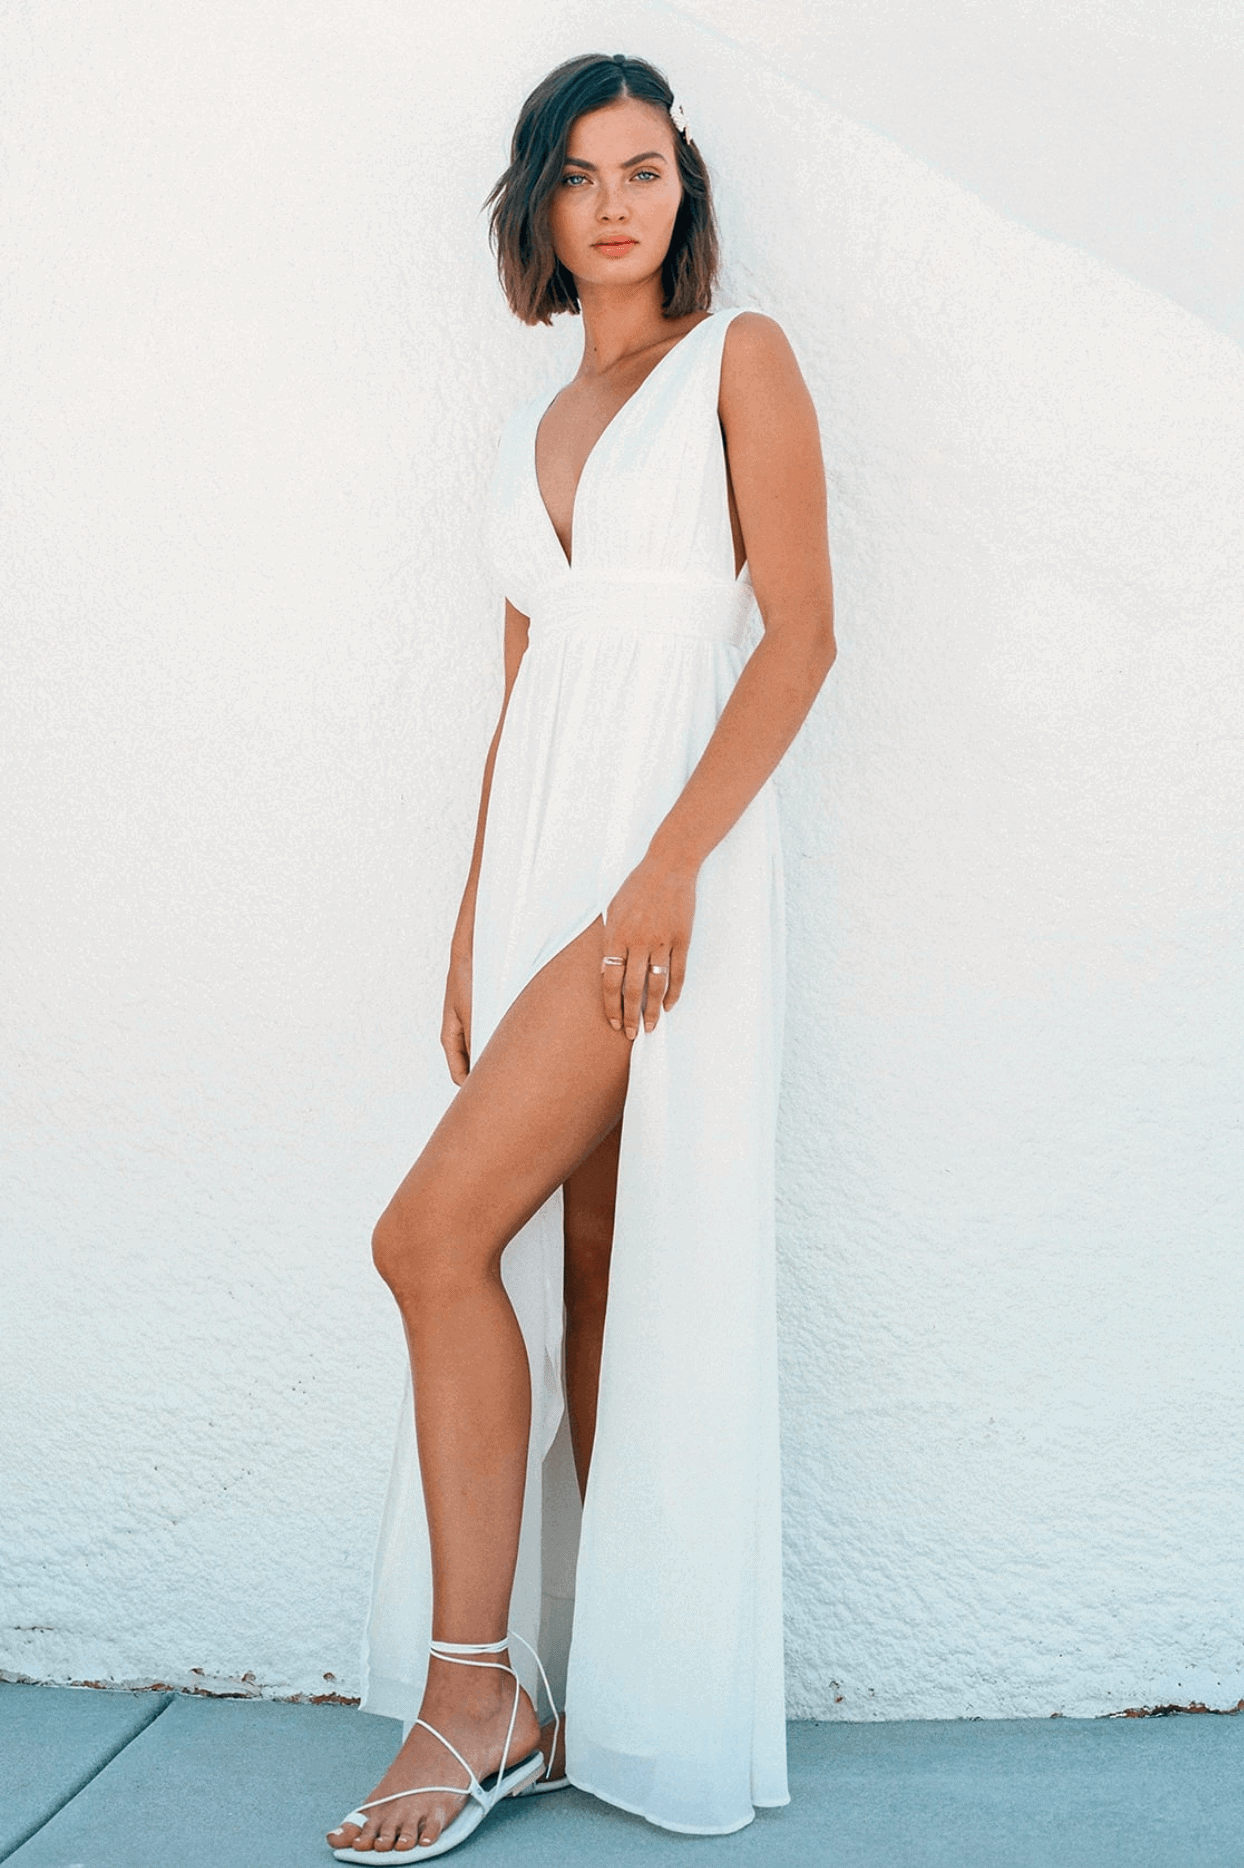 Elopement Wedding Dress Casual Simple White Split Maxi Dress Intimate Wedding Dress Romantic